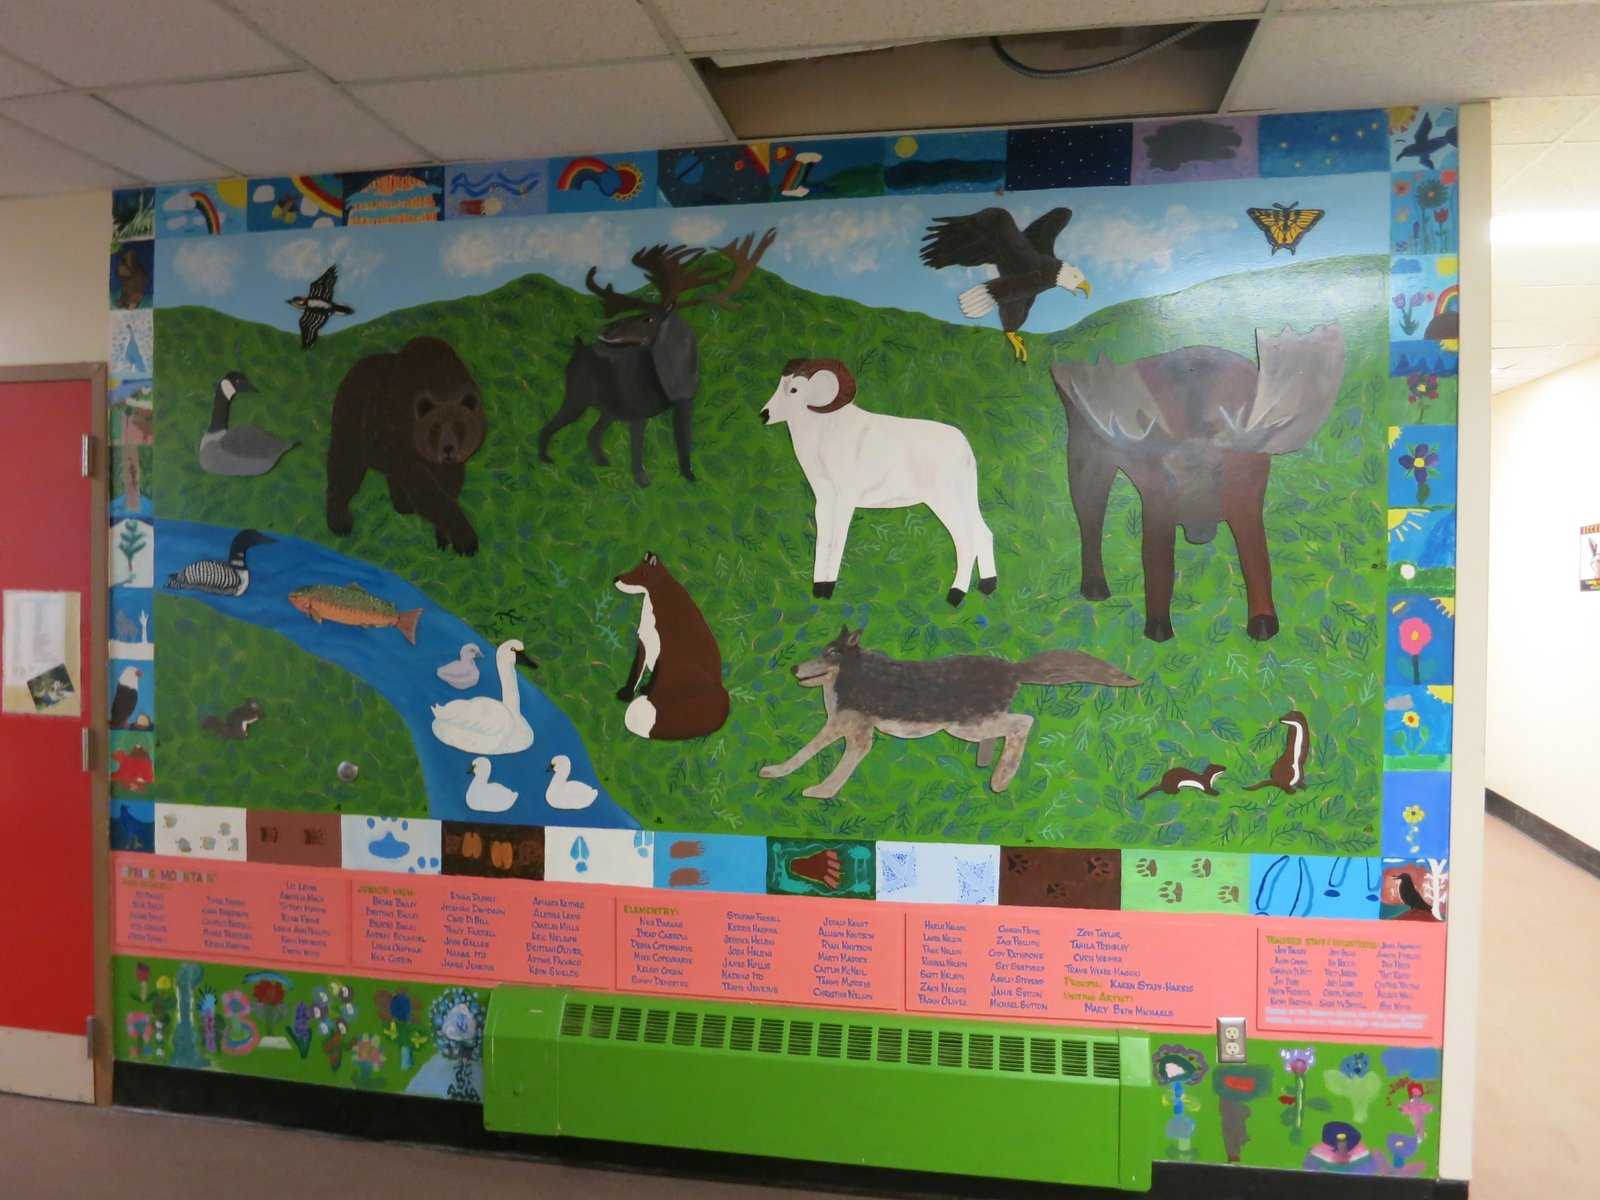 A mural in one of the rural schools where Ute Kaden is doing her research is very colorful. All photos: courtesy Ute Kaden.